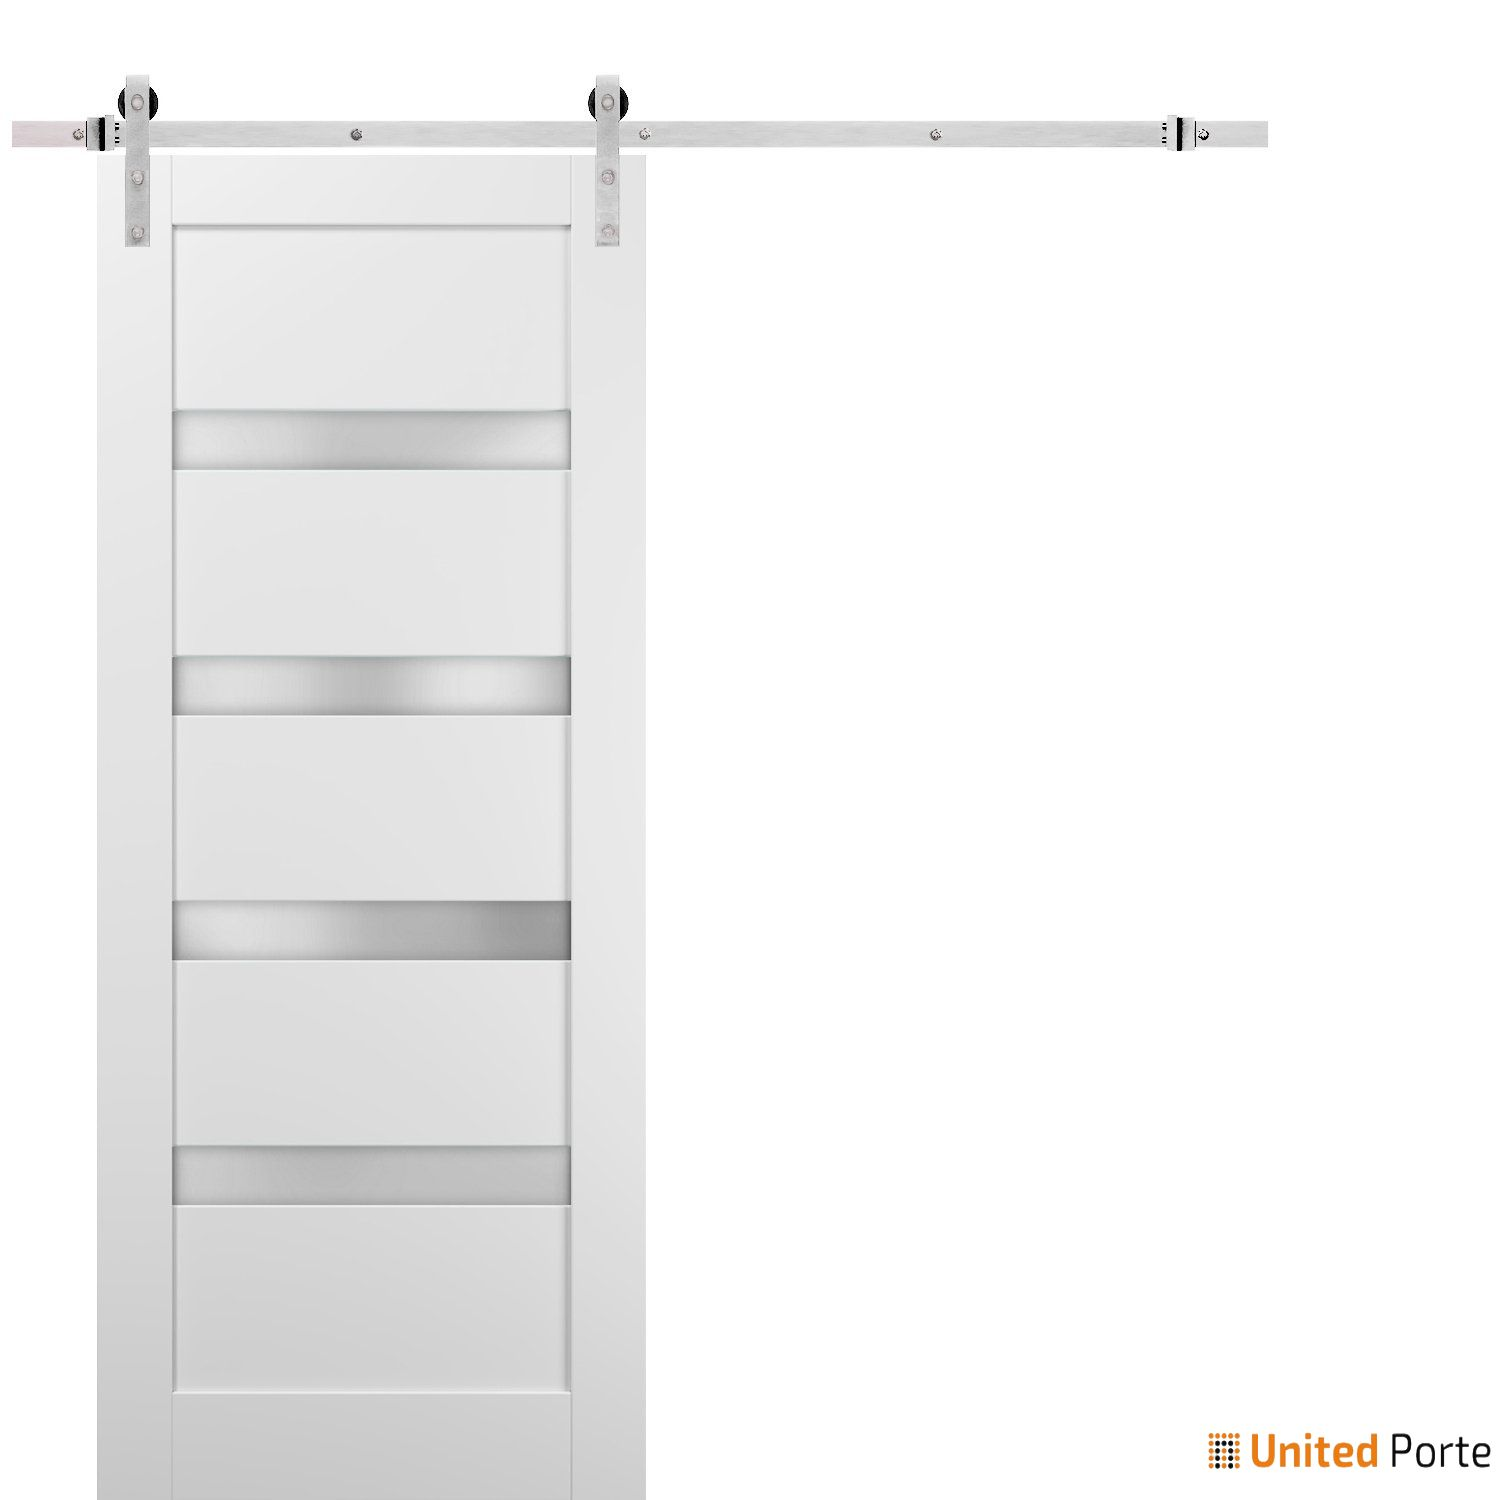 Quadro 4113 White Silk with Frosted Opaque Glass Sliding Barn Door with Stainless Hardware | Lite Wooden Solid Panel Interior Barn Doors